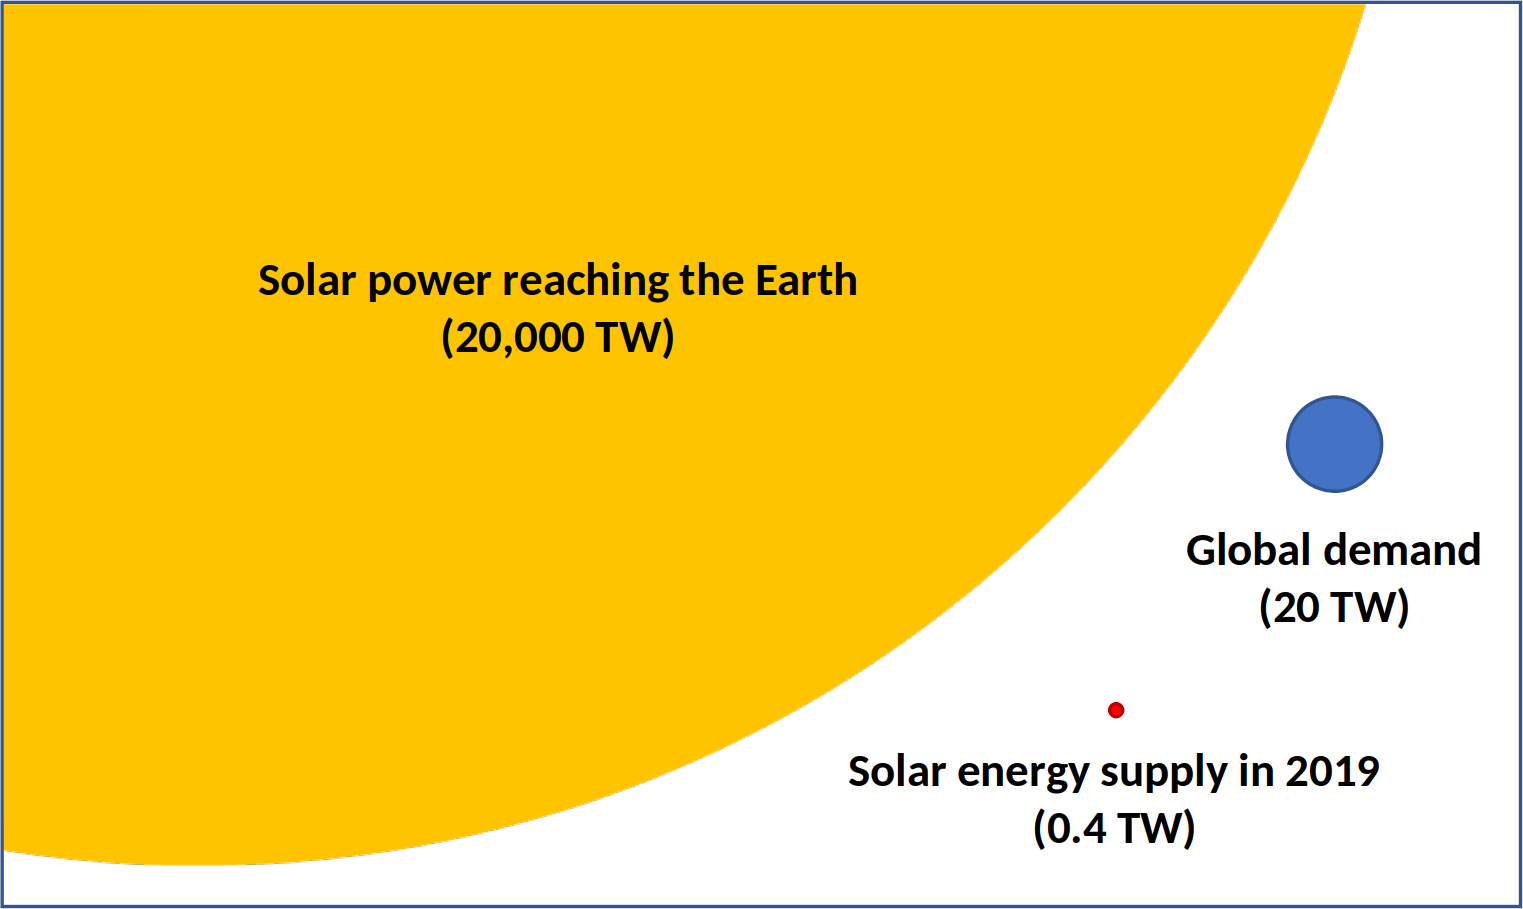 Solar energy compared to demand